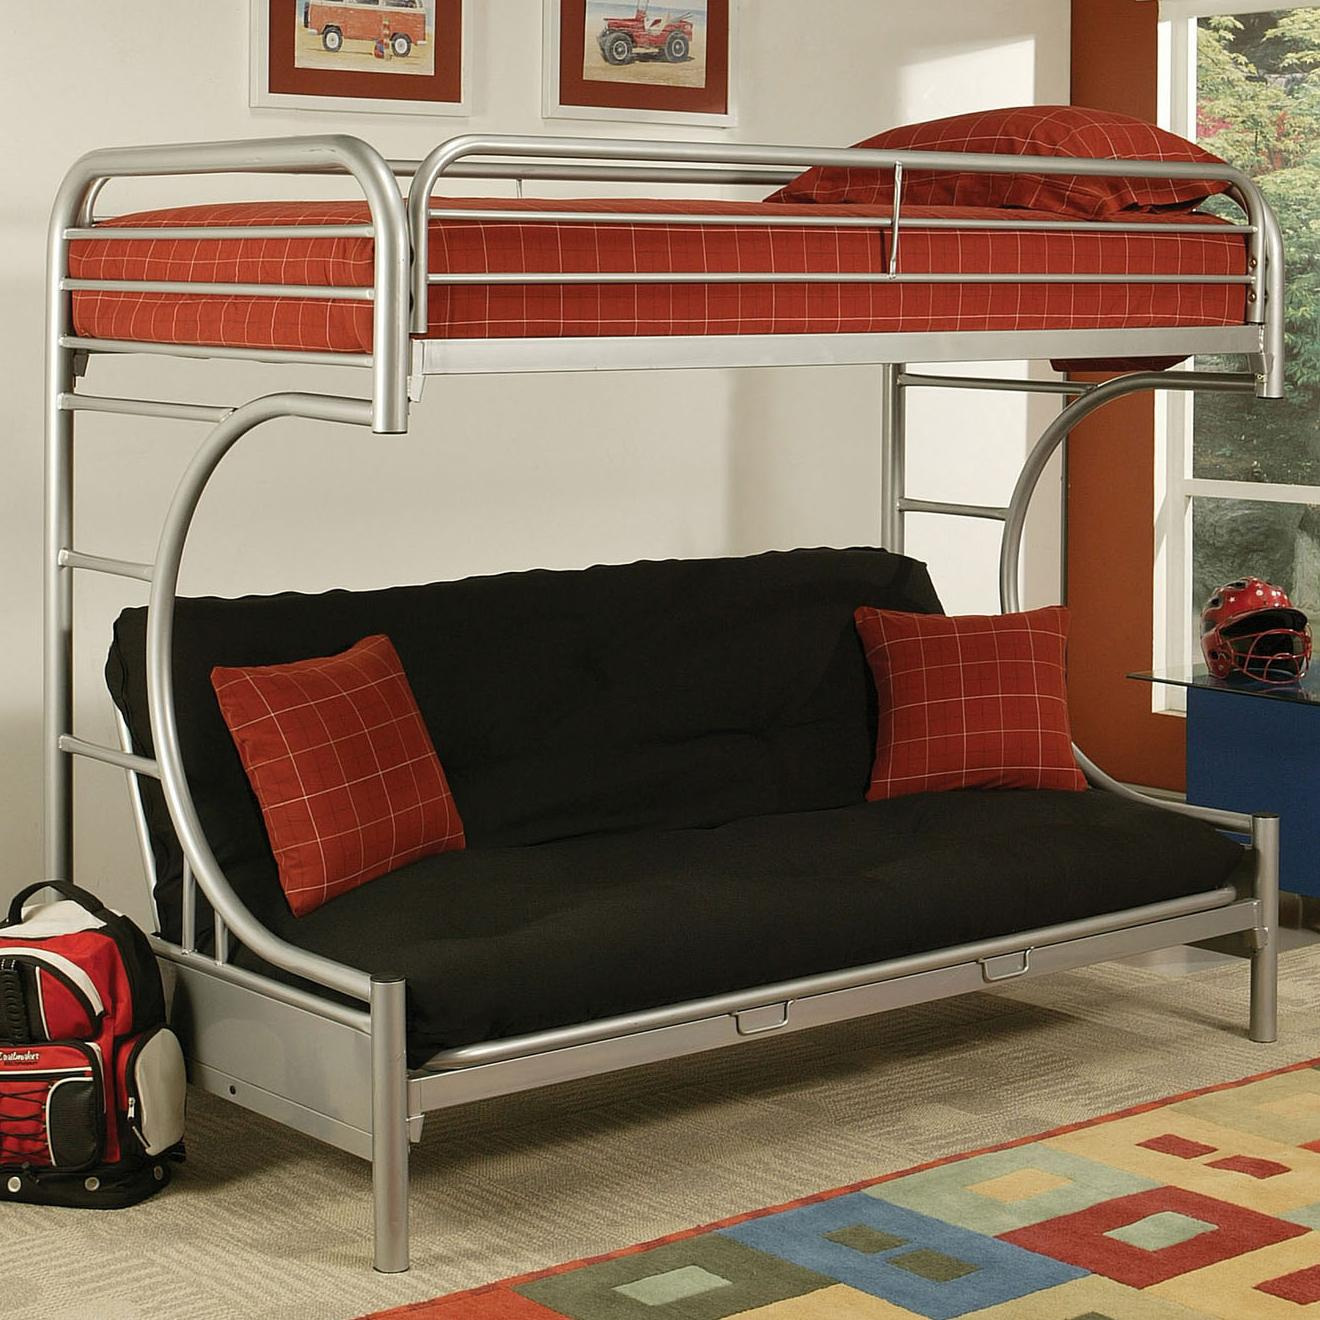 Acme Furniture Eclipse Twin/Full Bunk Bed - Item Number: 02091NV SILVER